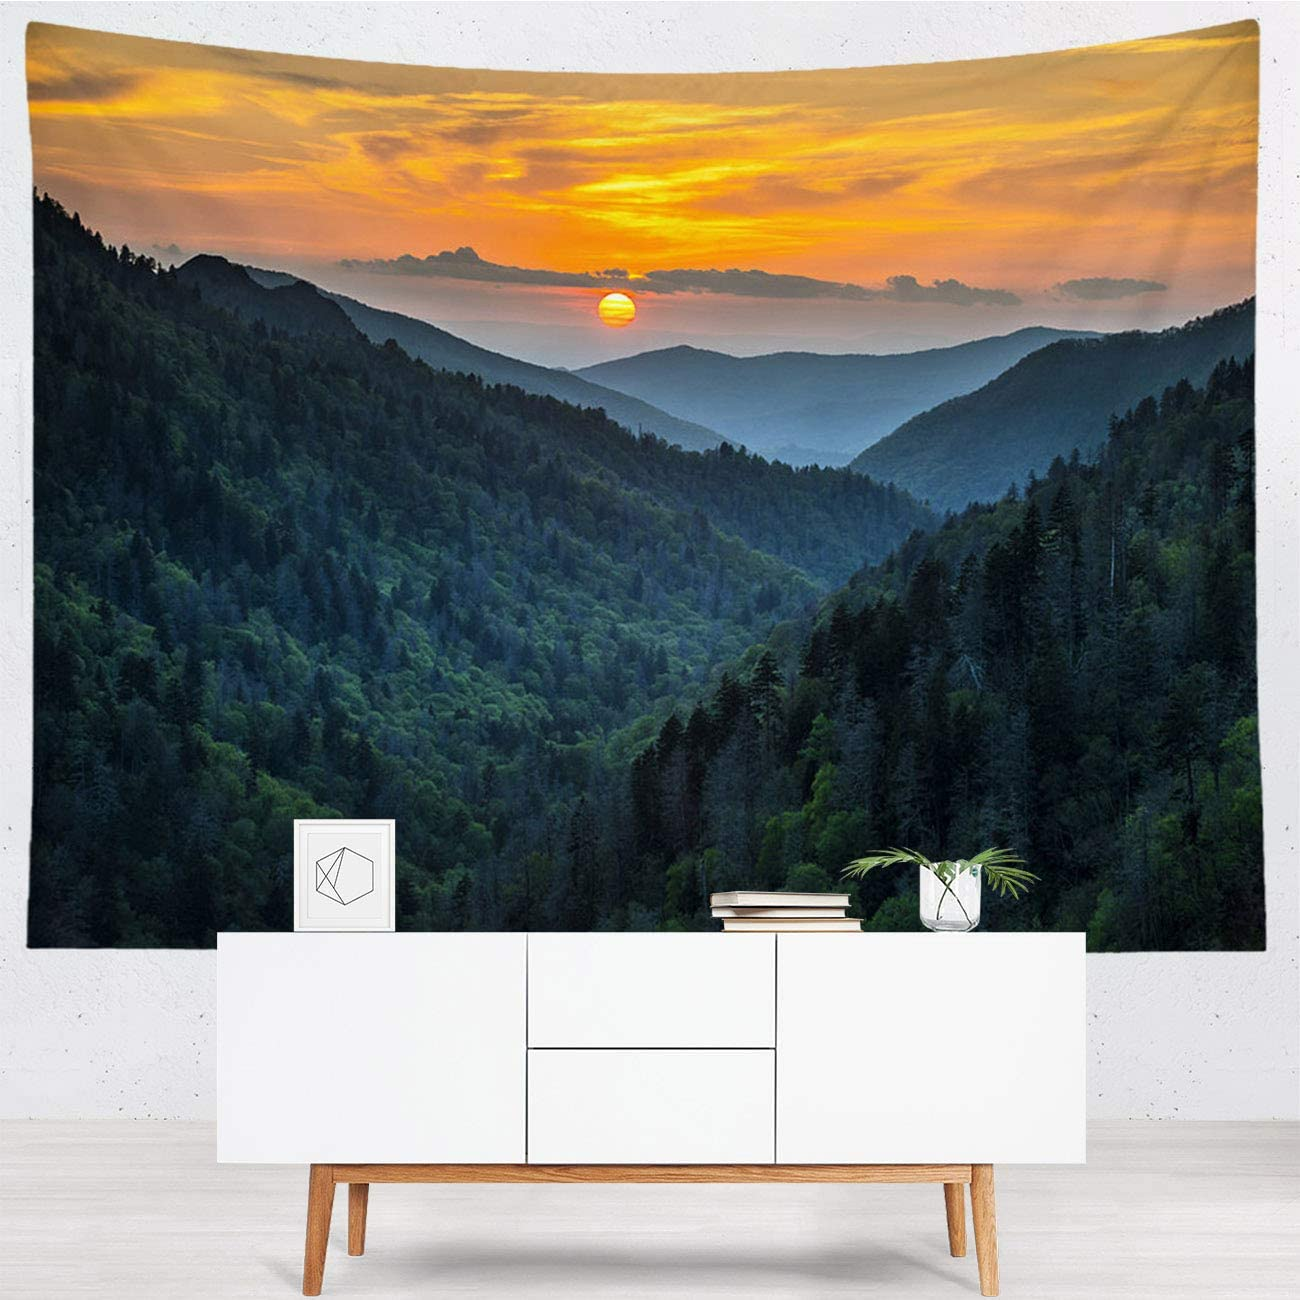 National Park Hanging Wall Tapestries Polyester Thin Tapestry Gatlinburg Tn Great Smoky Mountains National Park Scenic Sunset Landscape Fashion Wall Tapestry For Dorm Bedroom Living Room 110x90 In Home Kitchen